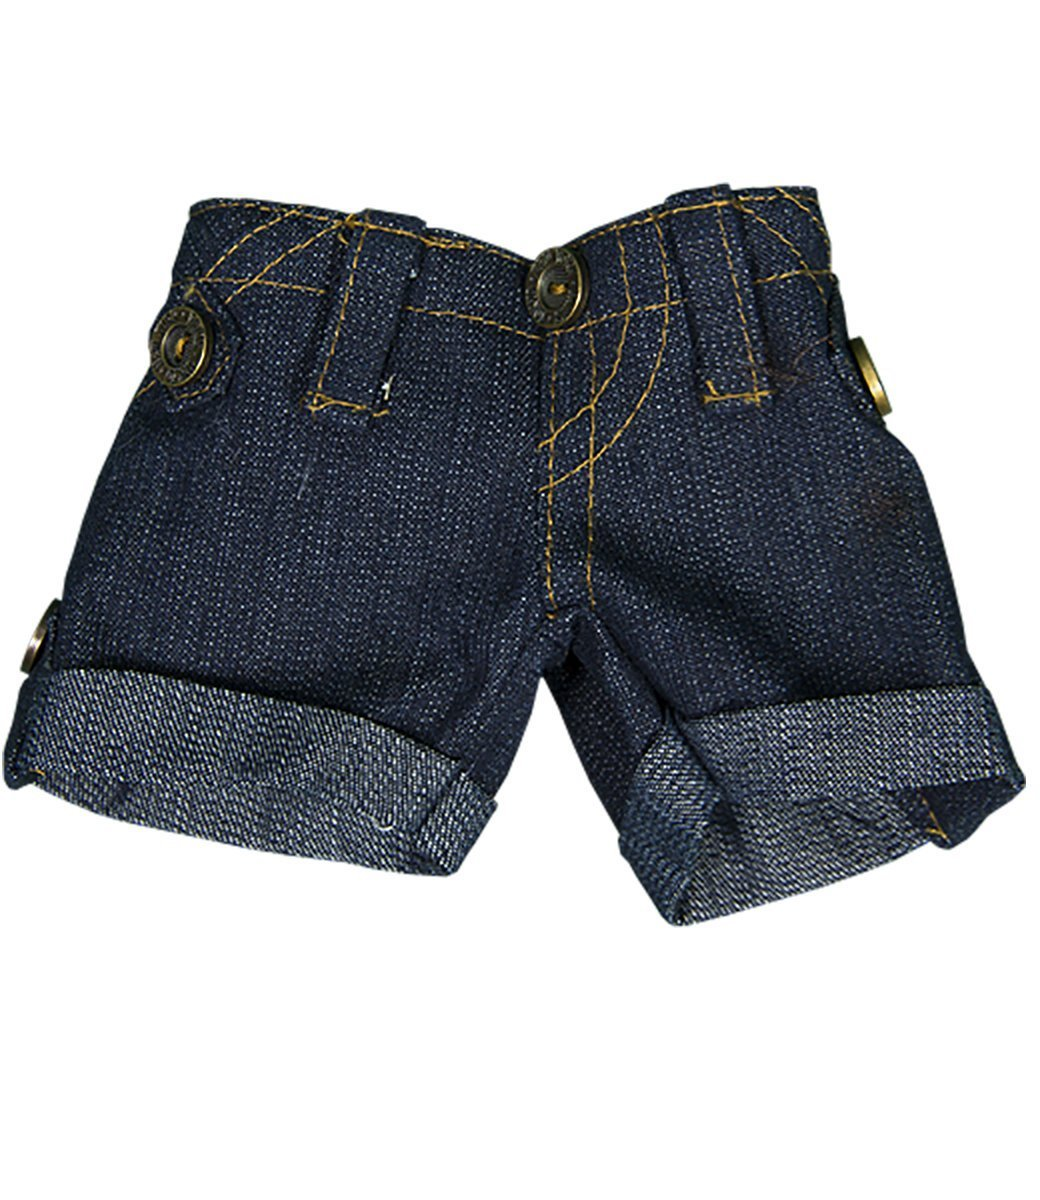 "Denim Shorts Teddy Bear Clothes Fit 8"" - 10"" Build-a-bear, Vermont Teddy Bears, and Make Your Own Stuffed Animals Teddy Mountain"